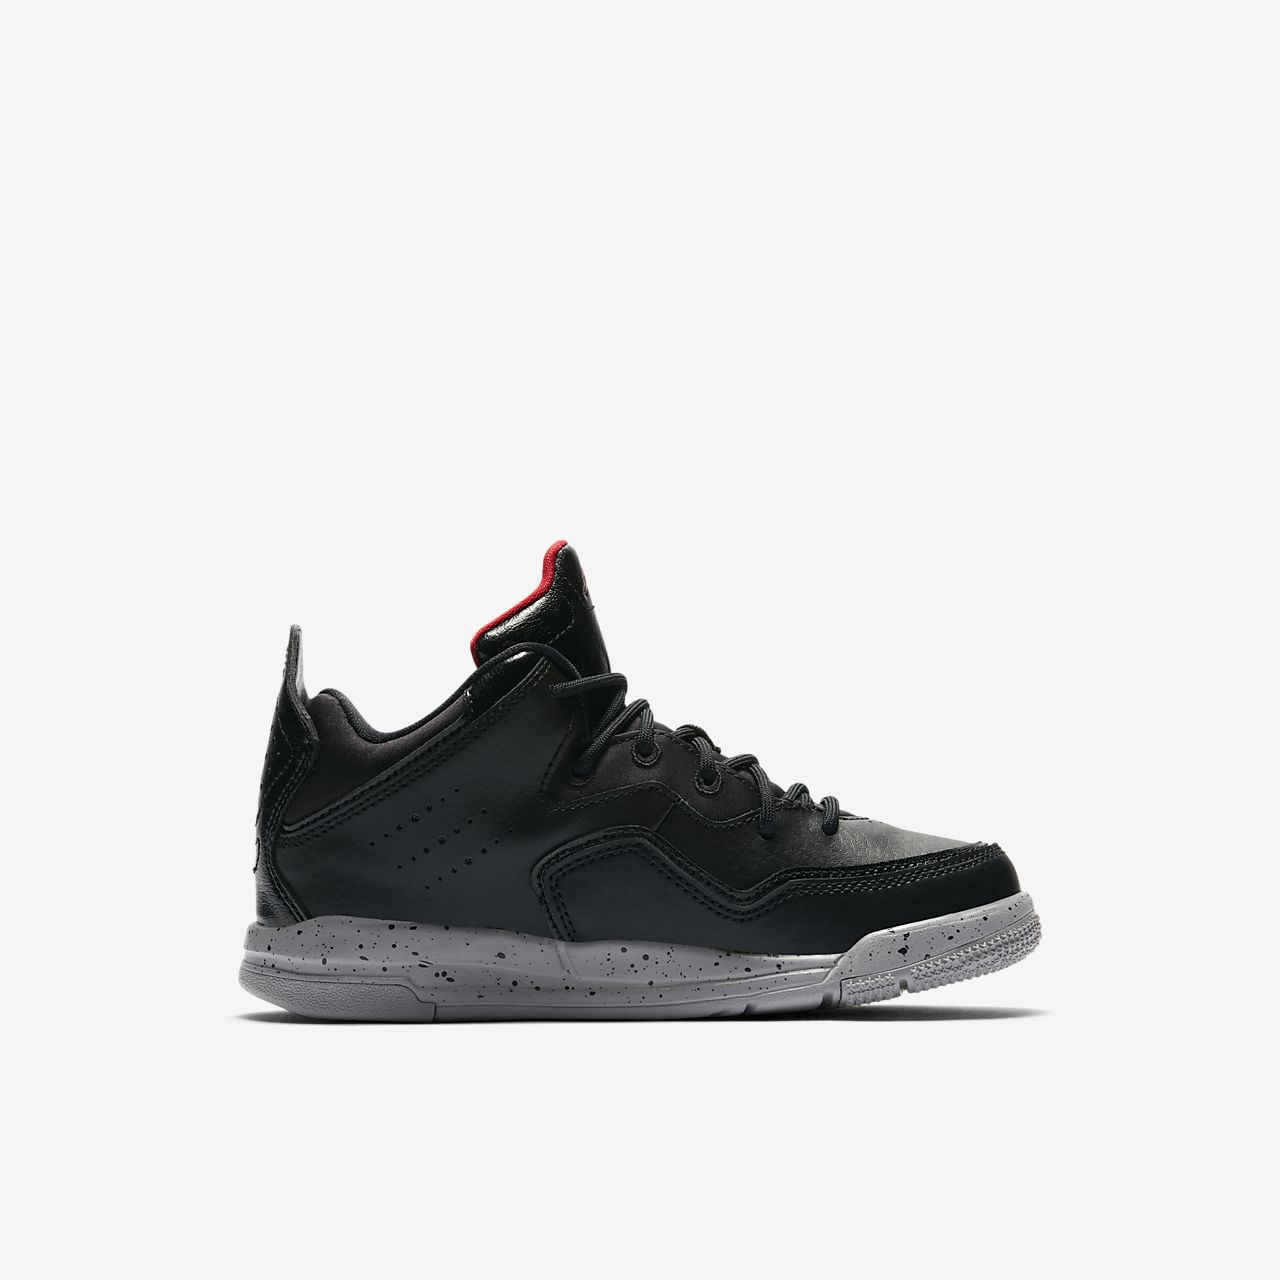 23 jordan shoes for boys nz